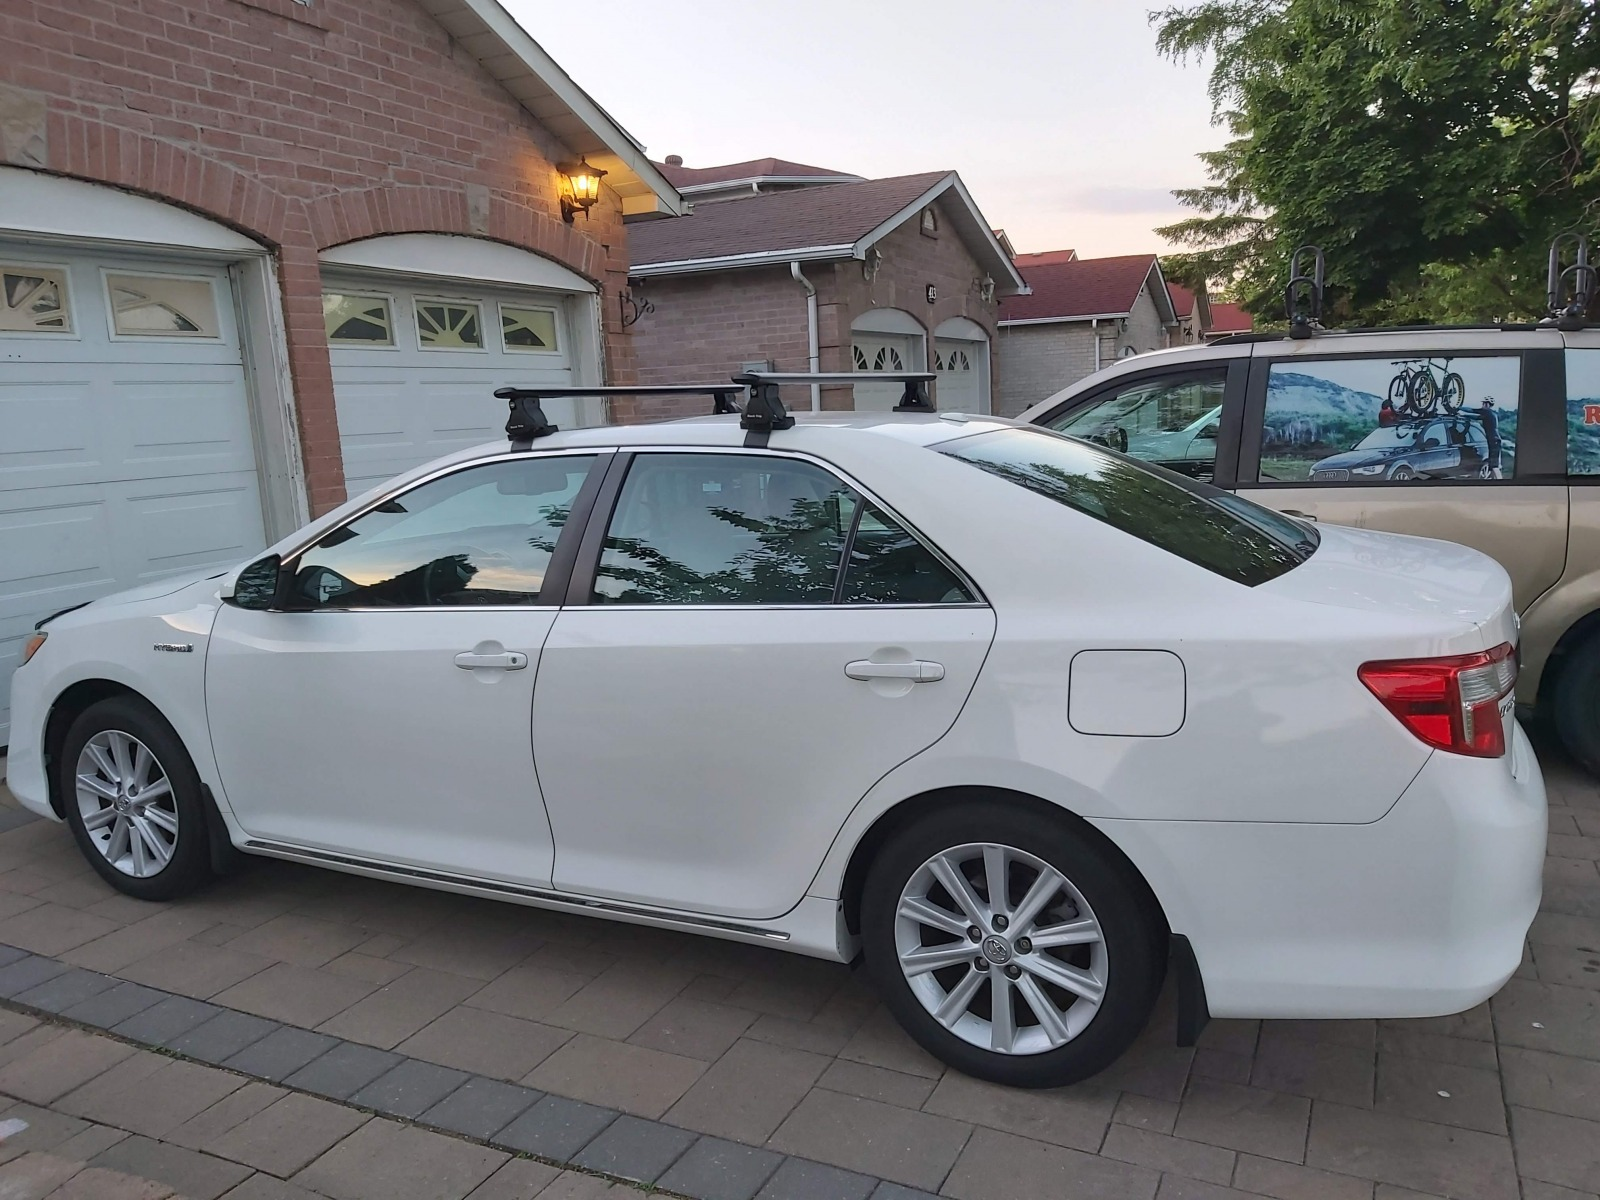 2014 toyota camry bare roof jet wing